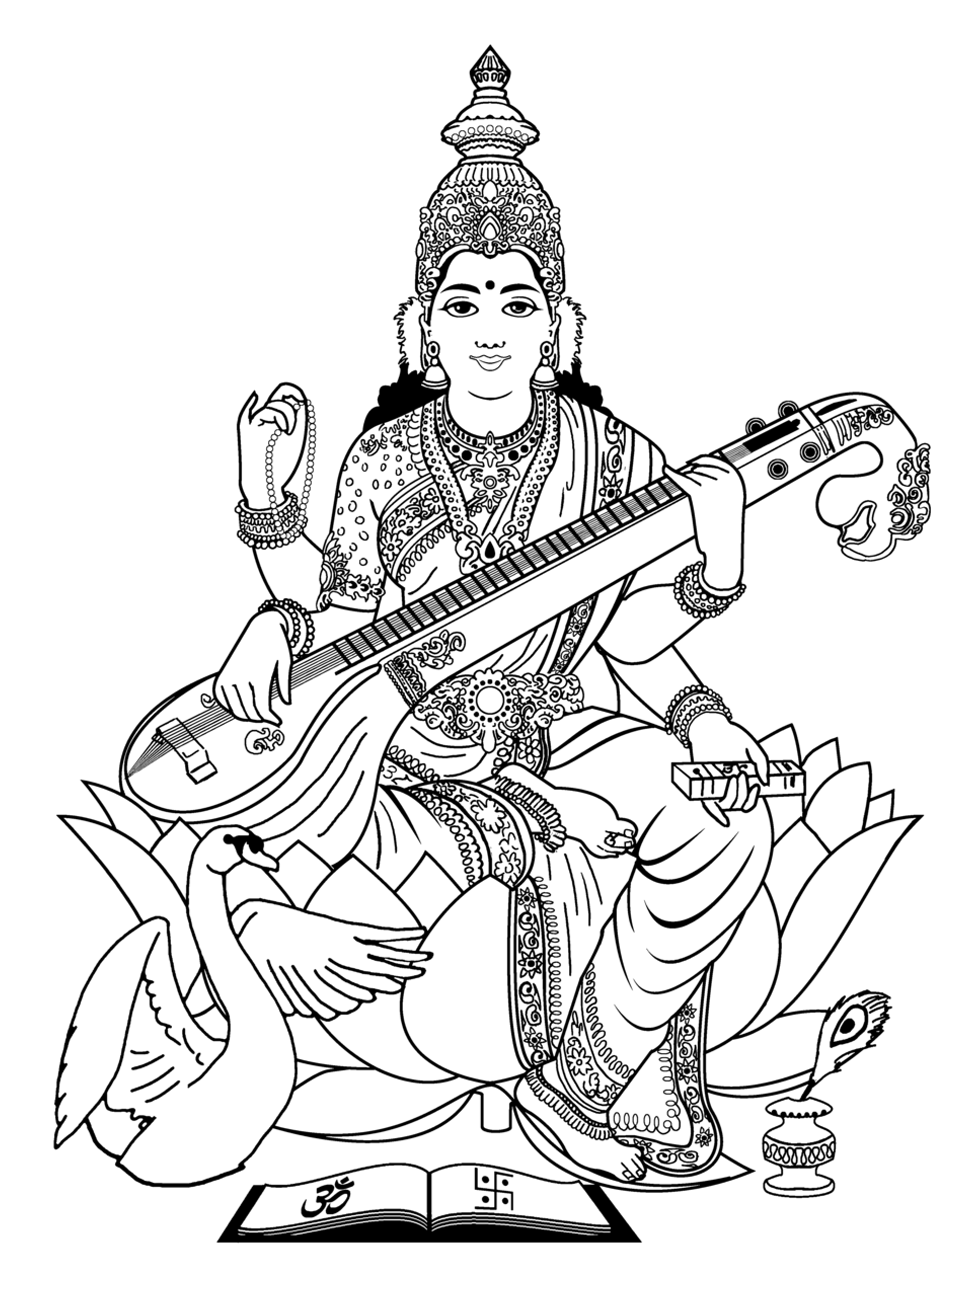 To print this free coloring page «coloring-adult-india-saraswati-3», click  on the printer icon at the right